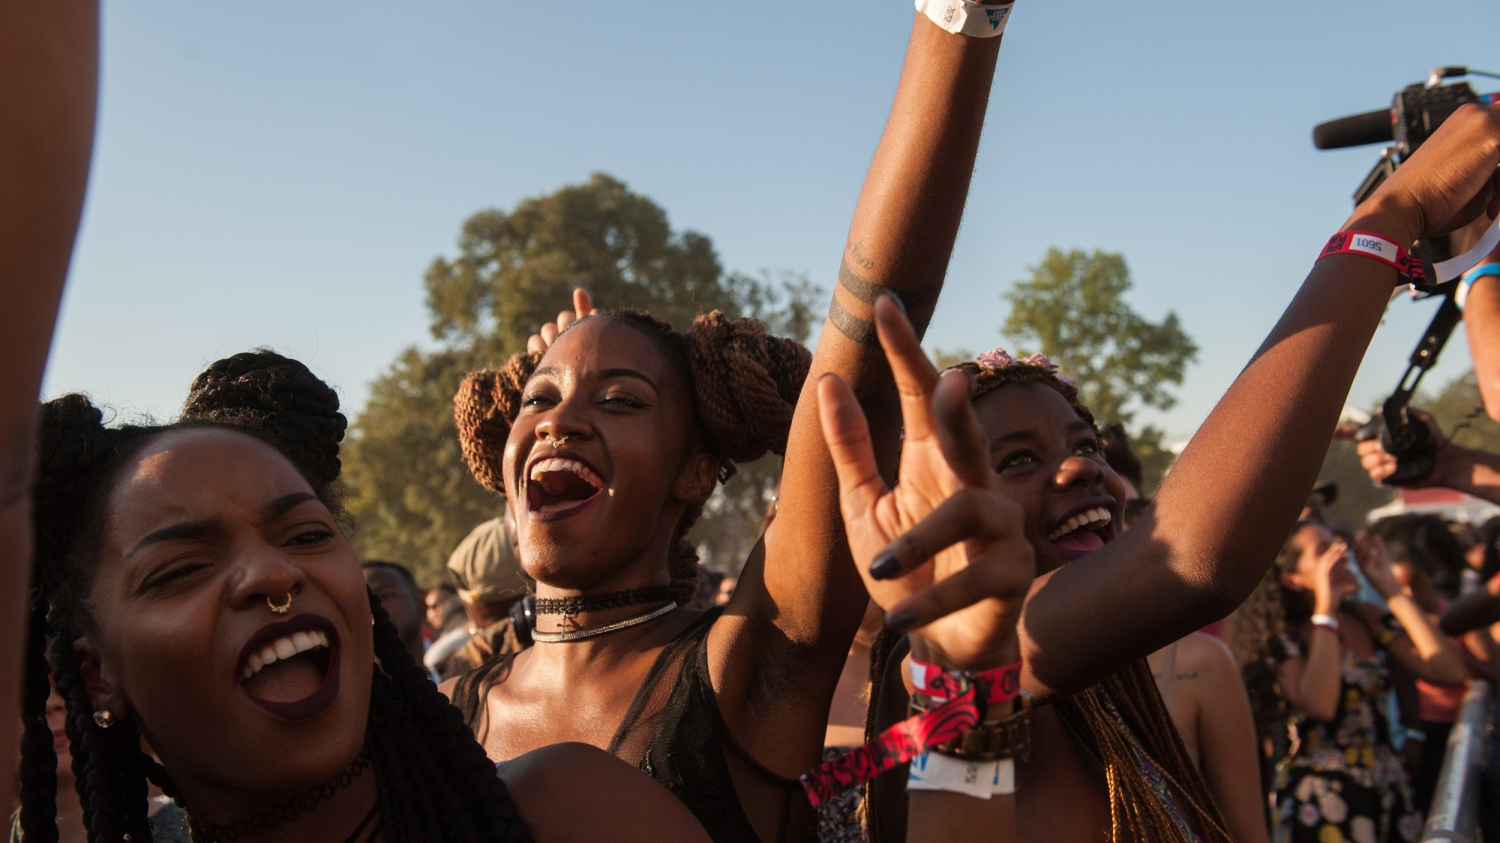 Afropunk Brooklyn Celebrates Youth, Music, And Fashion